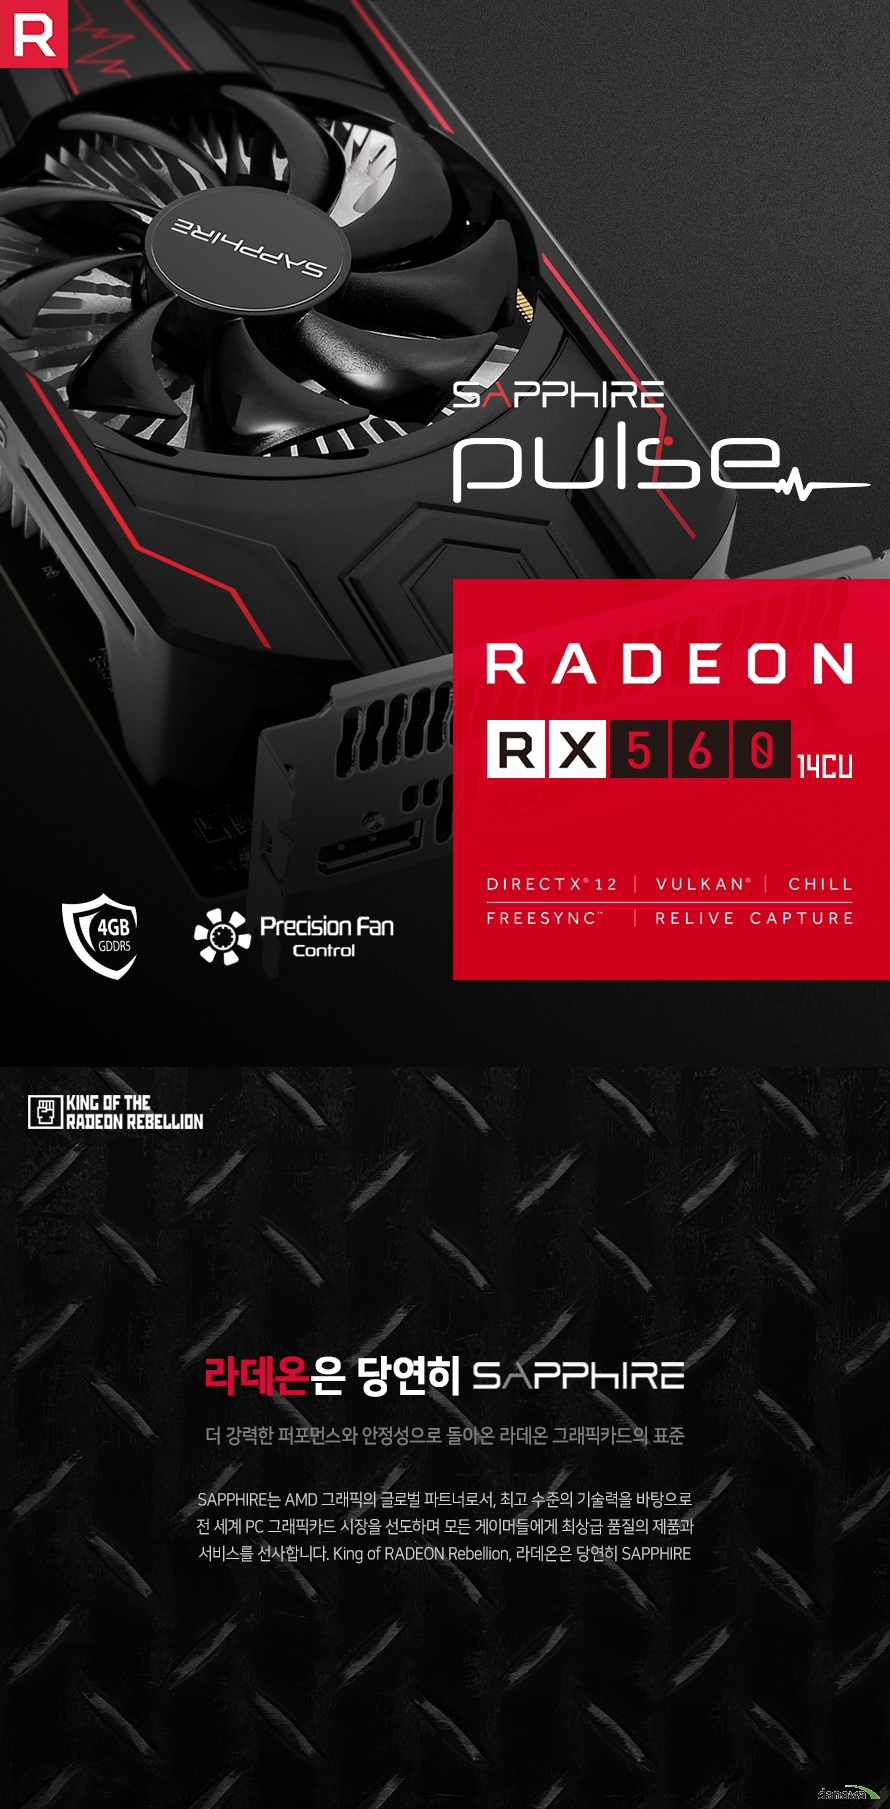 SAPPHIRE 라데온 RX 560 14CU D5 4GB PULSE ADVANTAGE EDITION